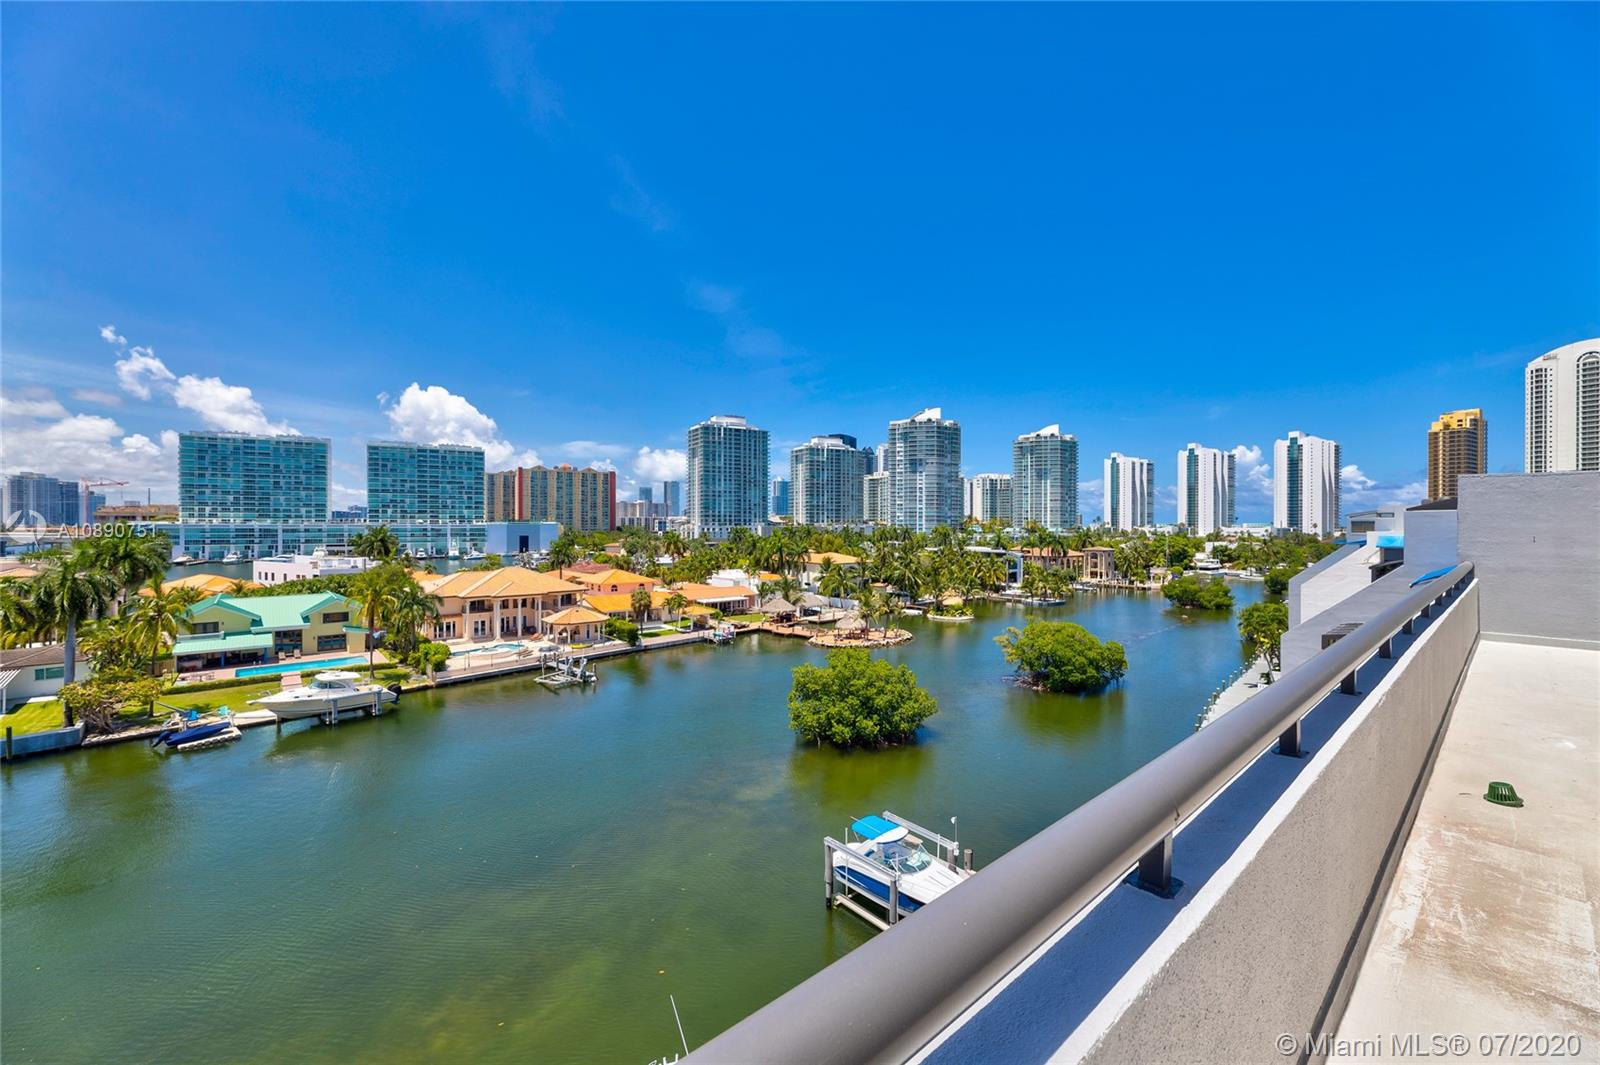 Photo of 425 Poinciana Island Drive #1444, Sunny Isles Beach, Florida, 33160 - View from terrace of boat docks and the marina which wraps around the complex